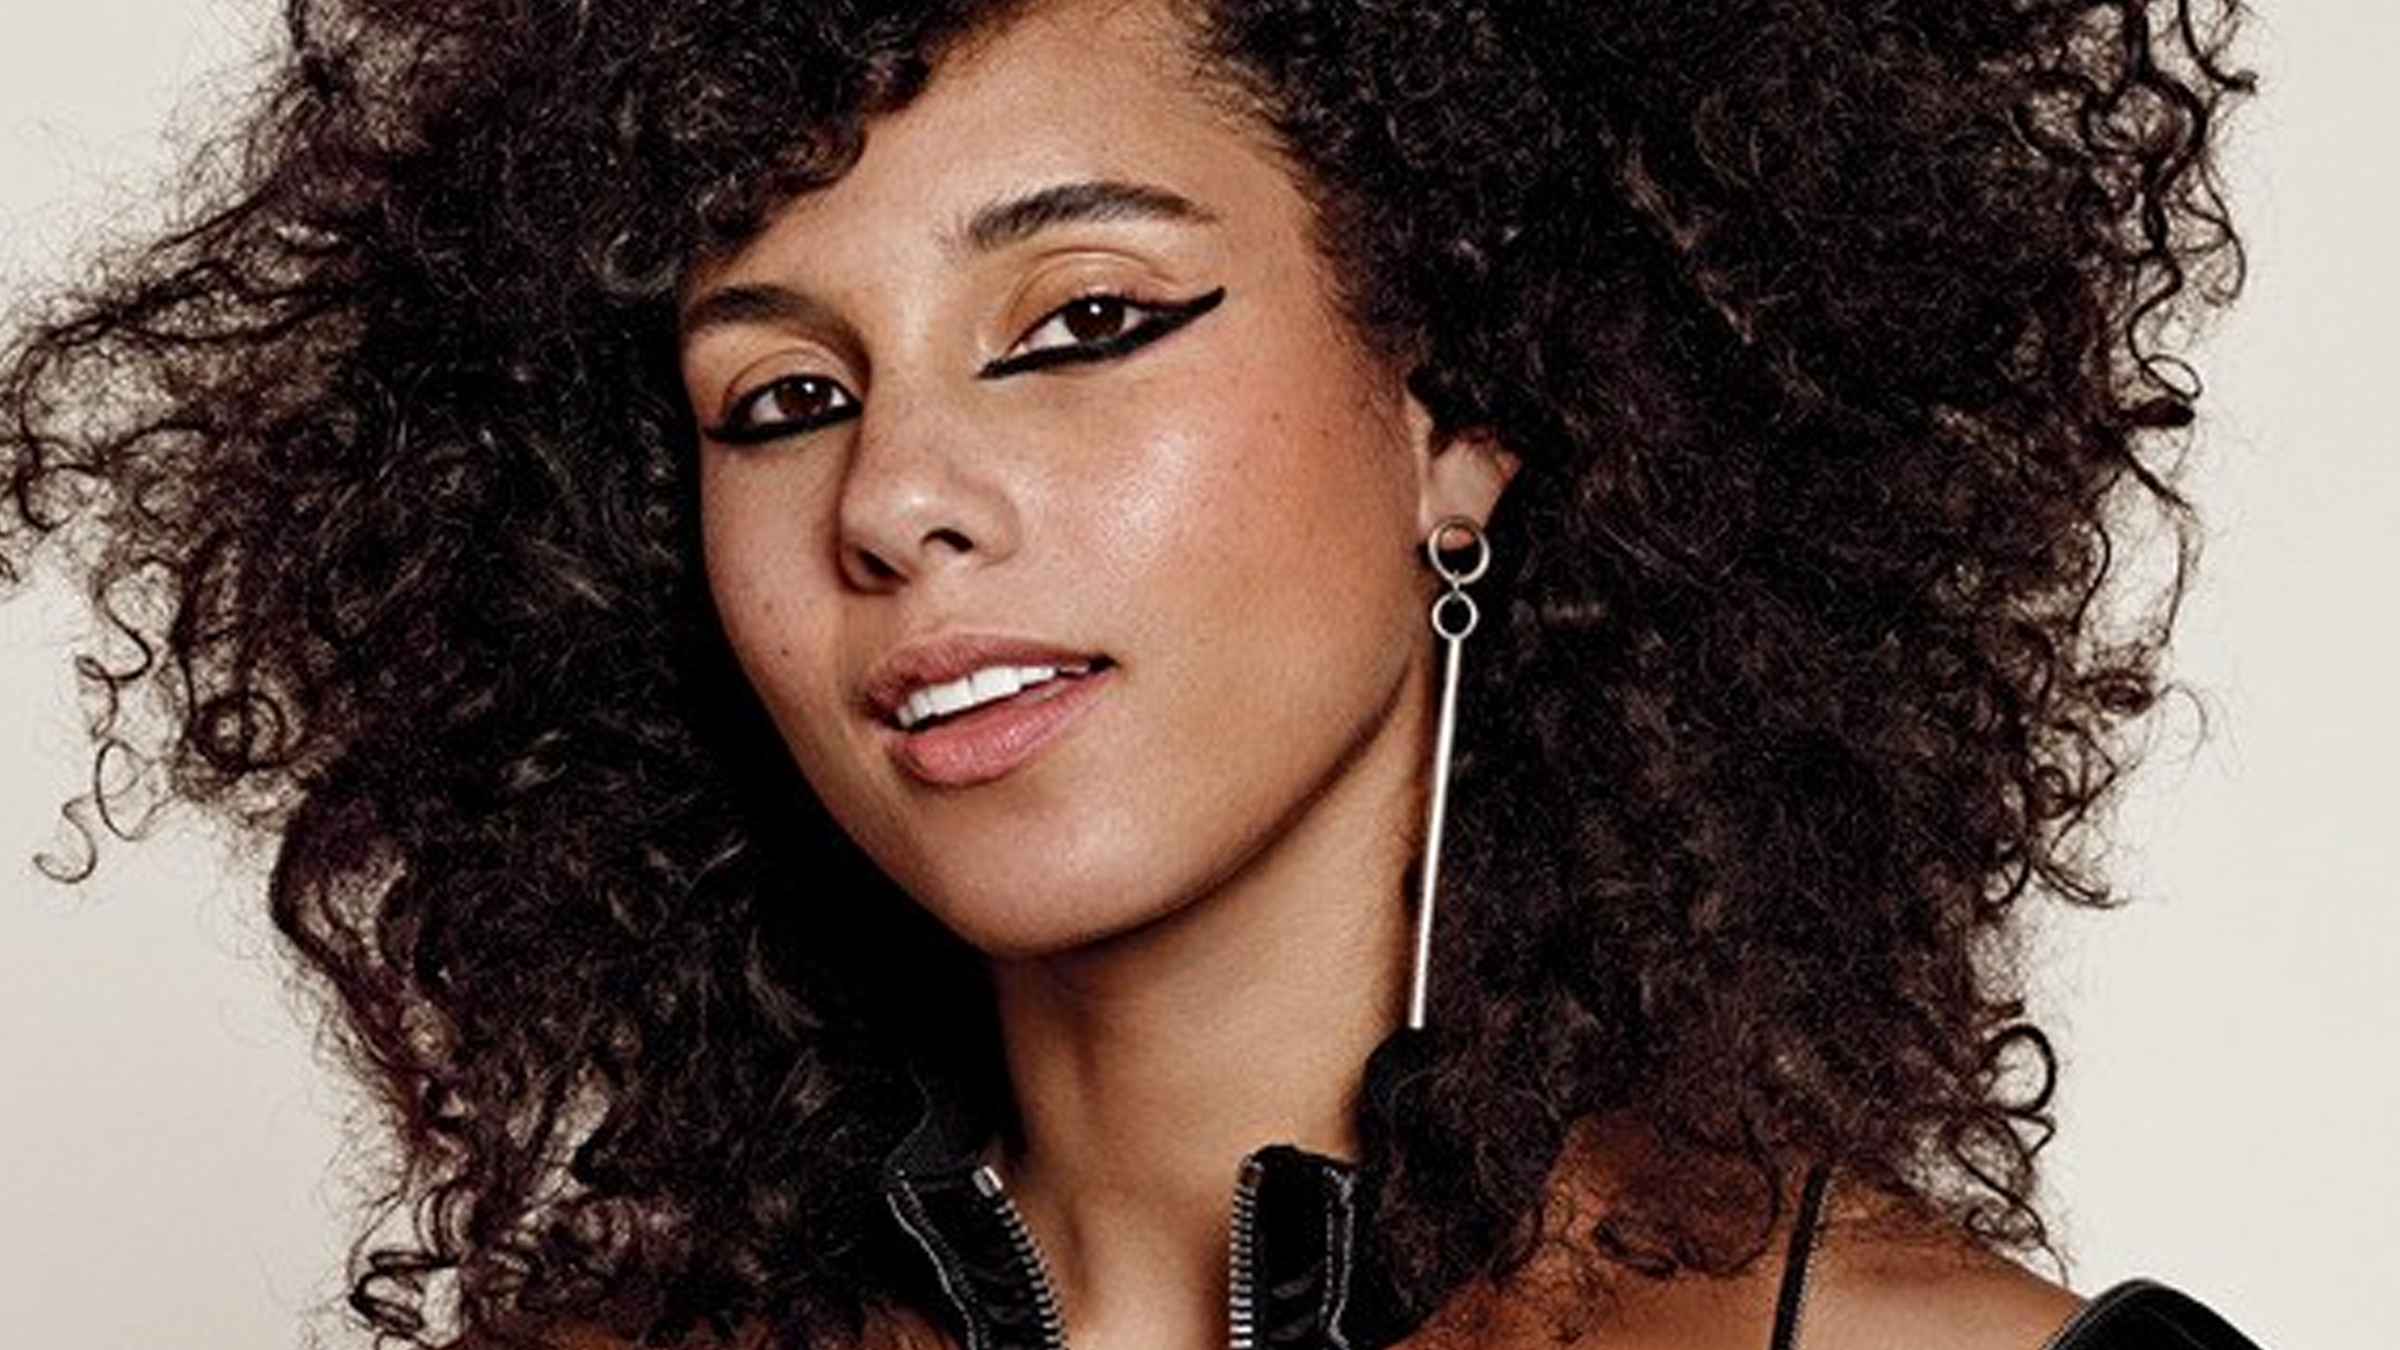 Teaser alicia keys makeup